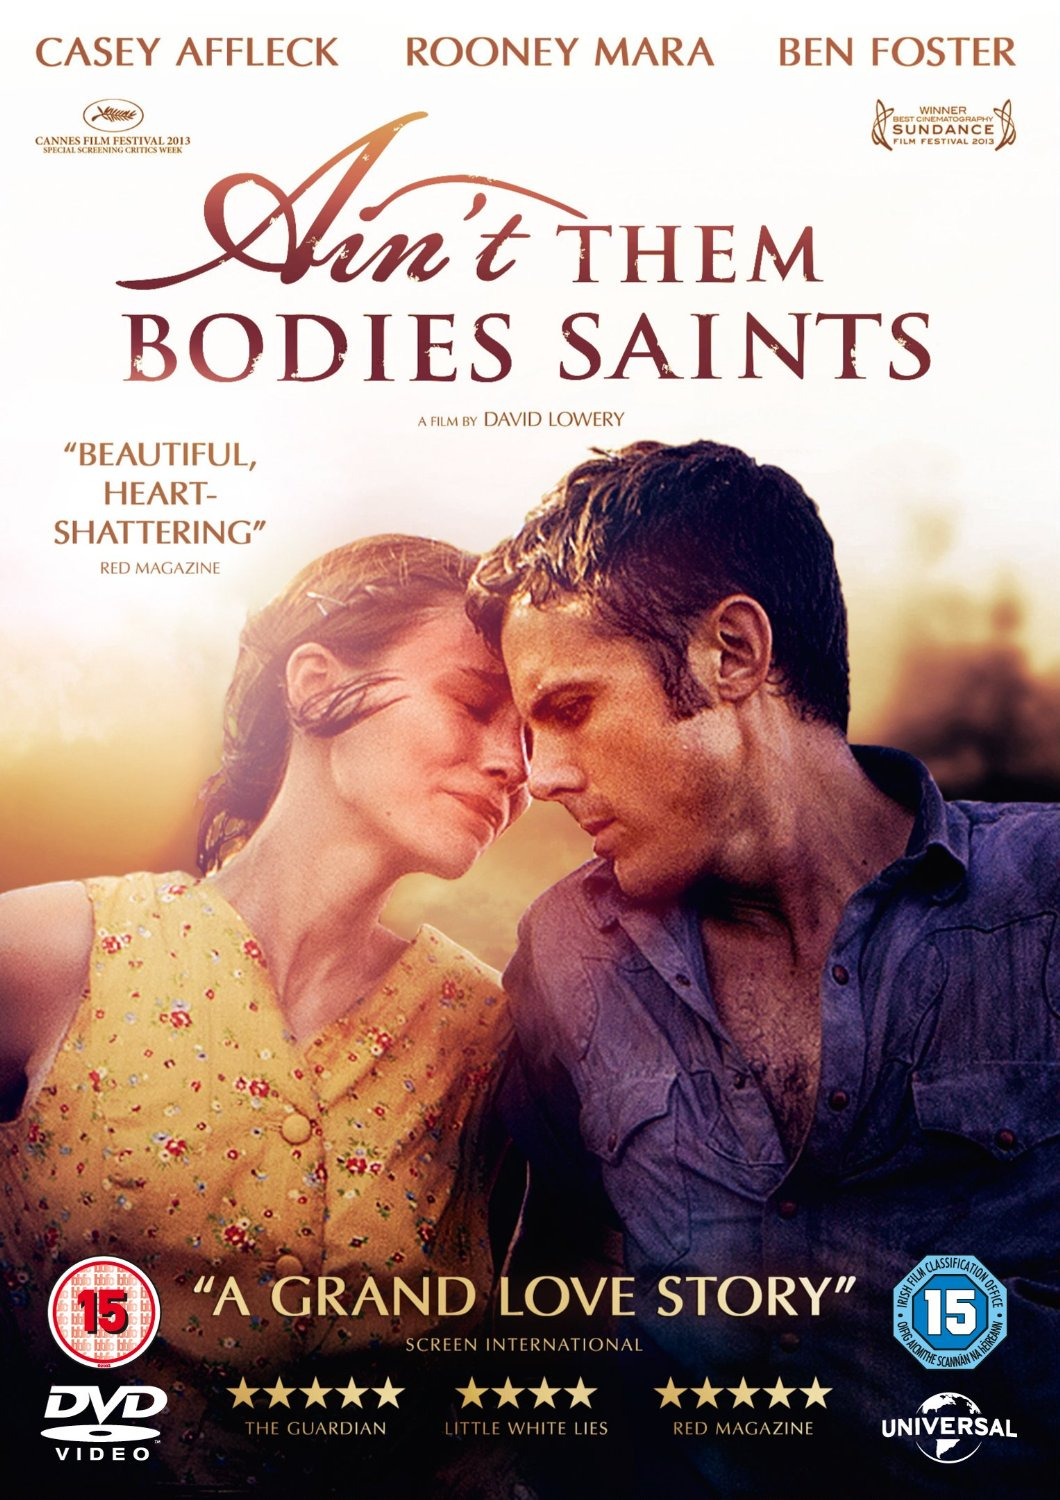 Ain't-Them-Bodies-Saints-DVD-Cover